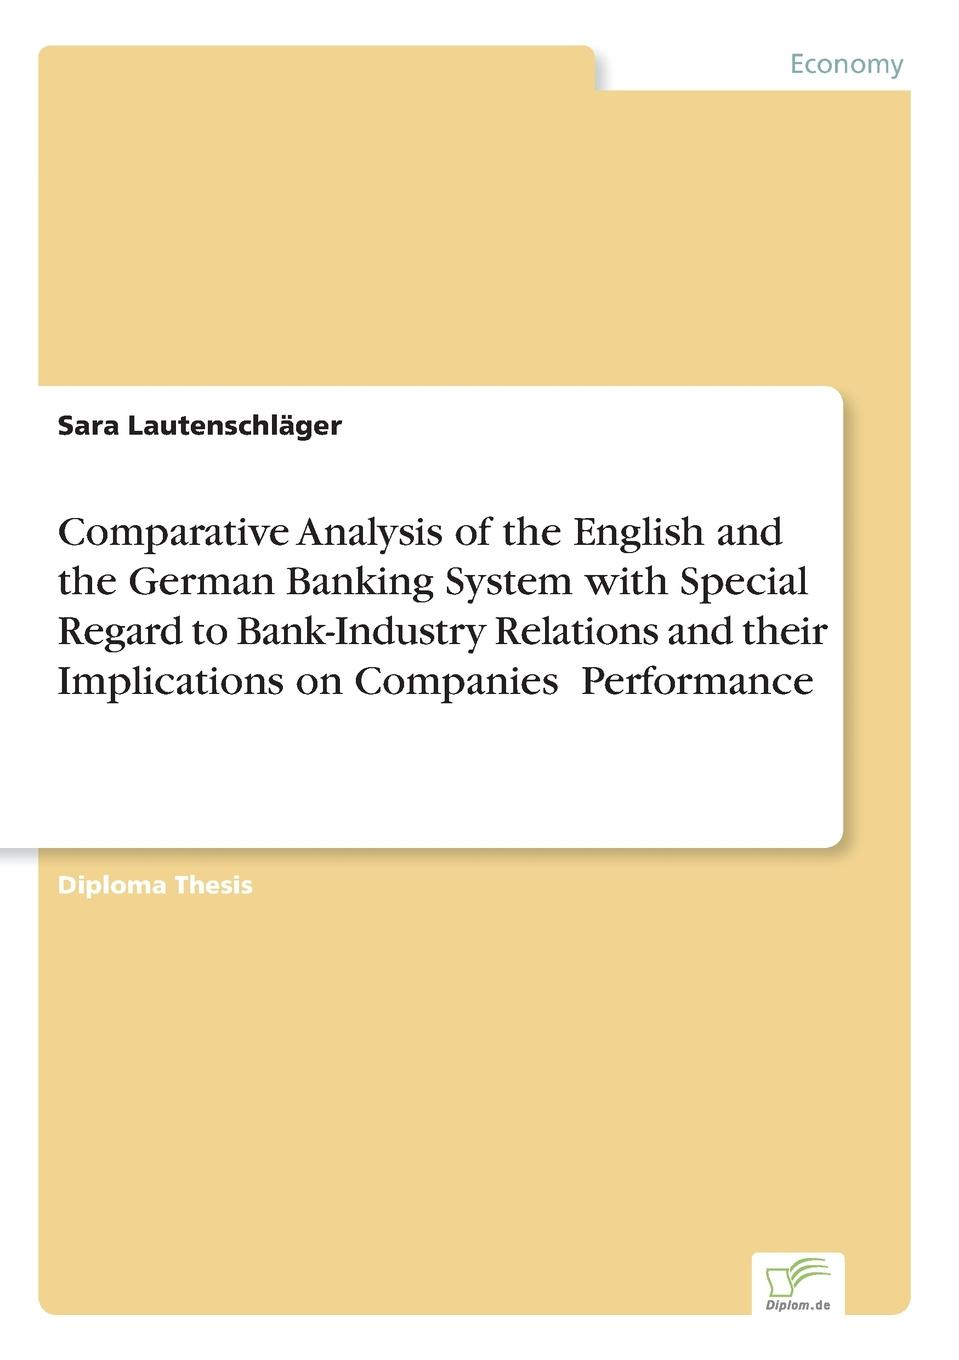 Sara Lautenschläger Comparative Analysis of the English and the German Banking System with Special Regard to Bank-Industry Relations and their Implications on Companies. Performance kim schäfer banking portfolios and banking distress during the great depression in the u s